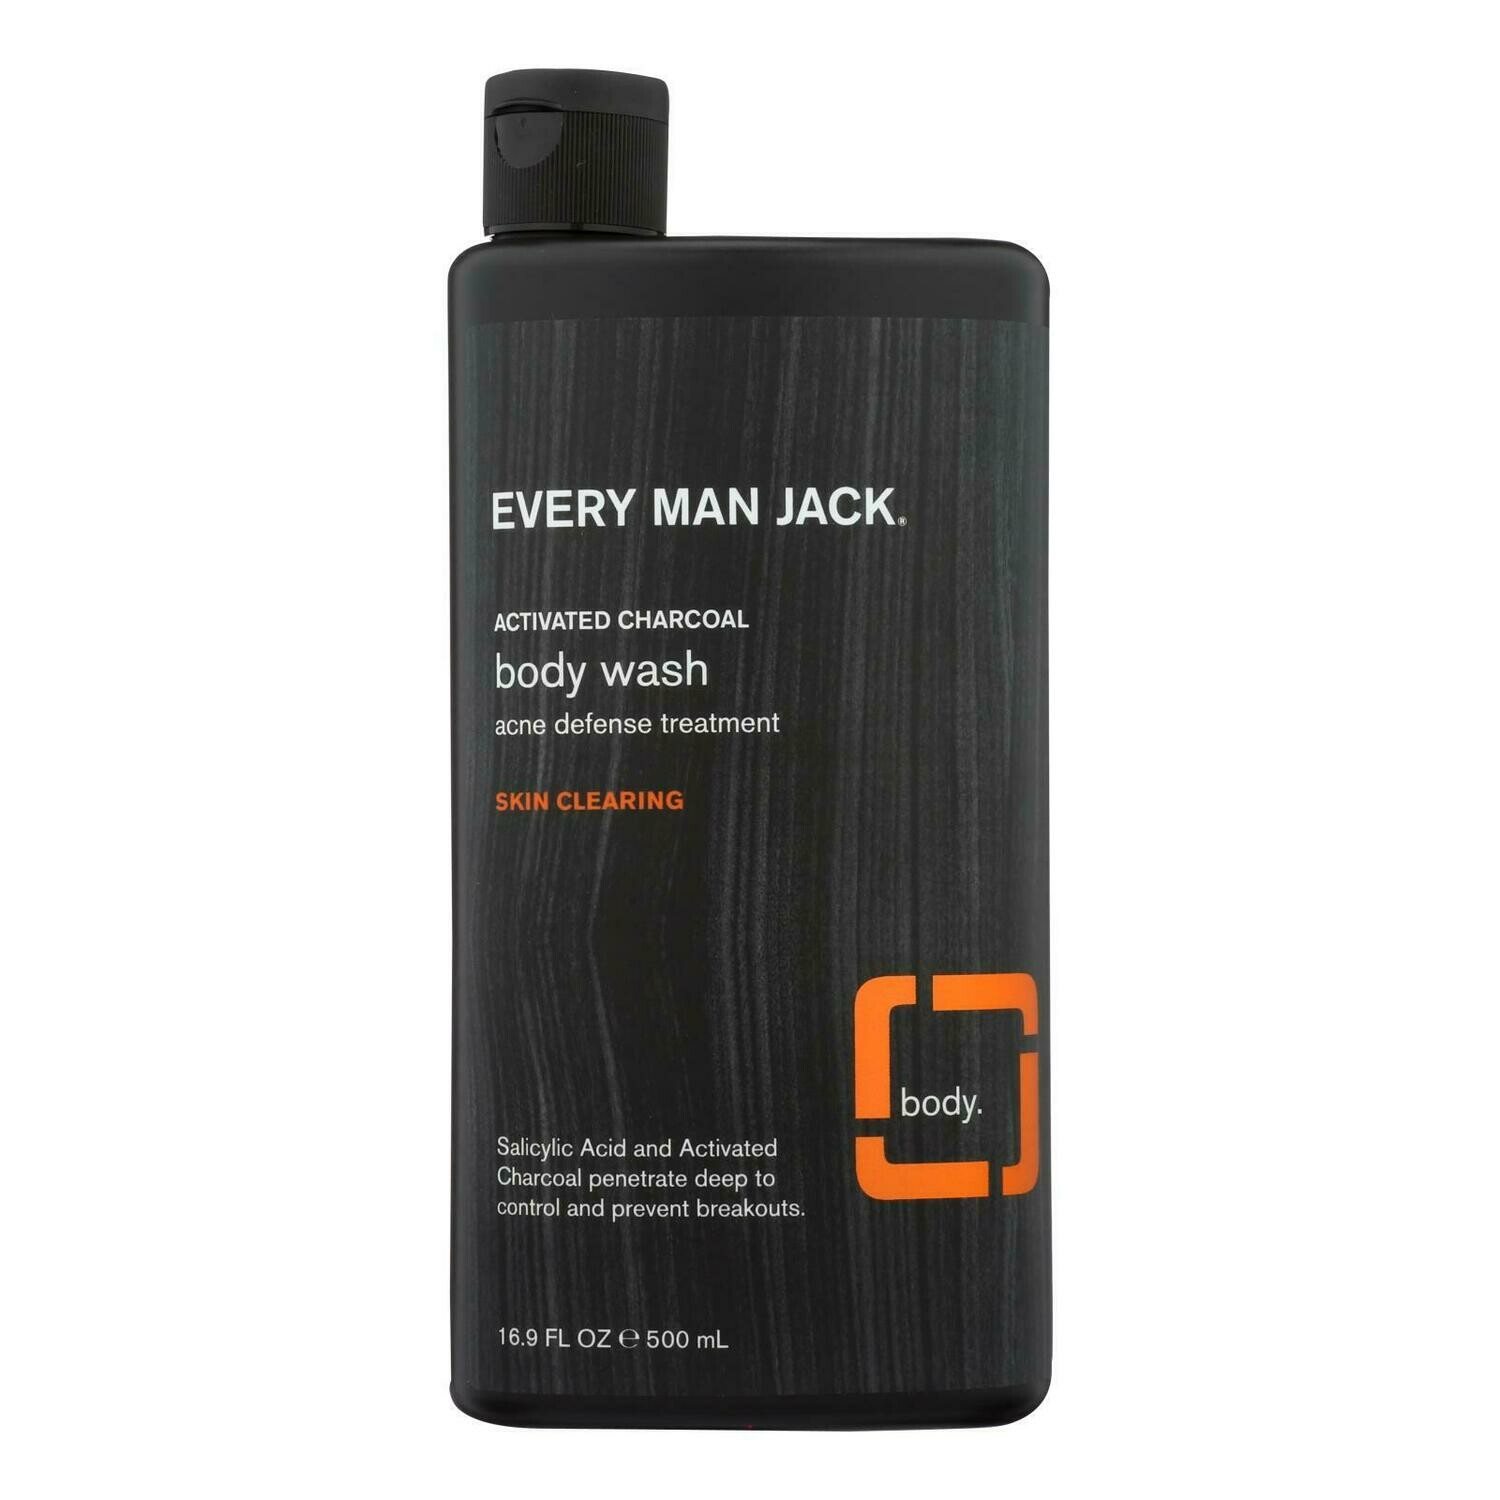 Every Man Jack Body Wash Activated Charcoal Body Wash | Skin Clearing - 16.9 oz(EO 2288439)